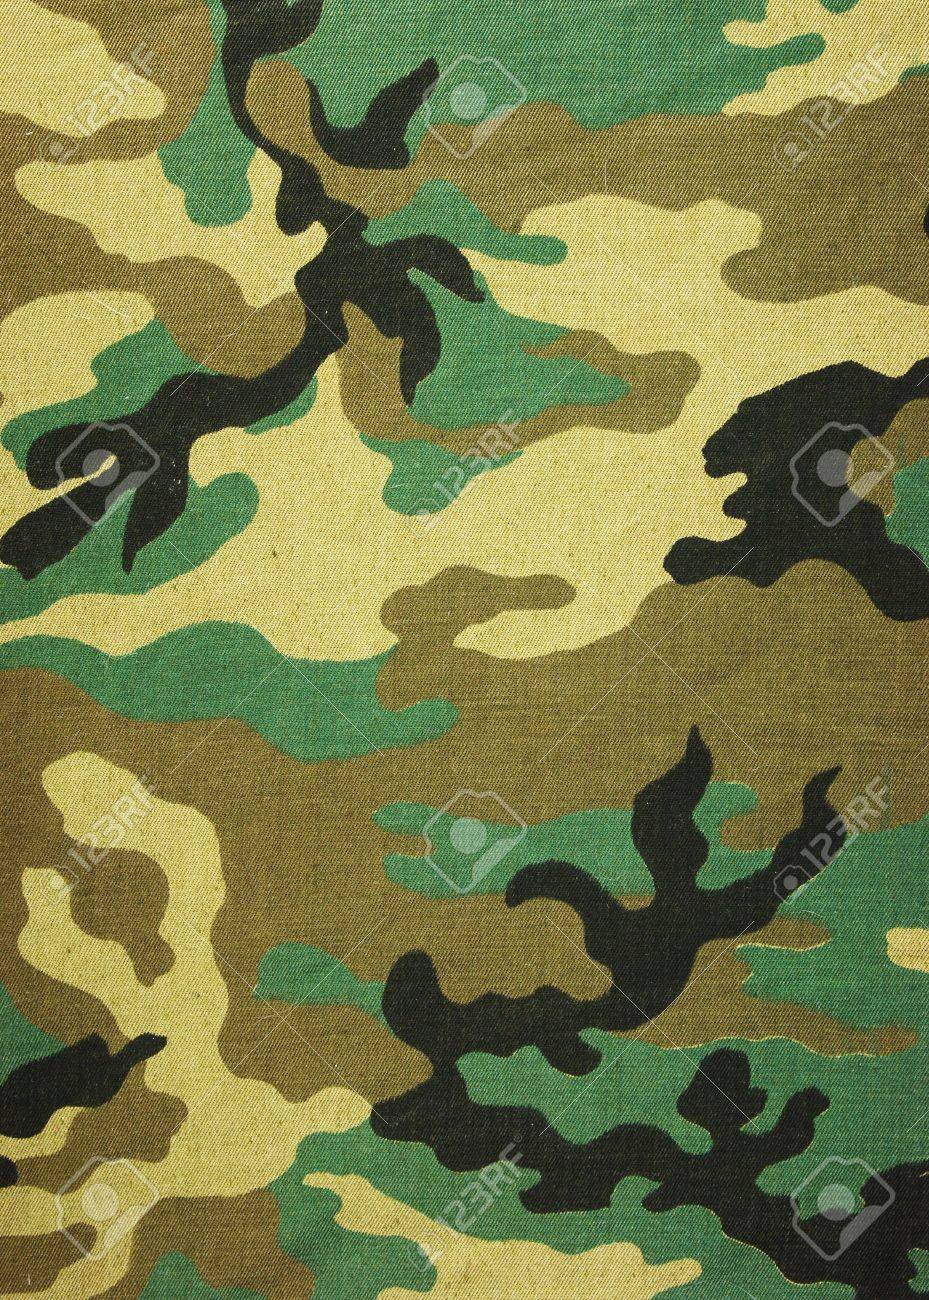 Military texture camouflage background Stock Photo - 18339525